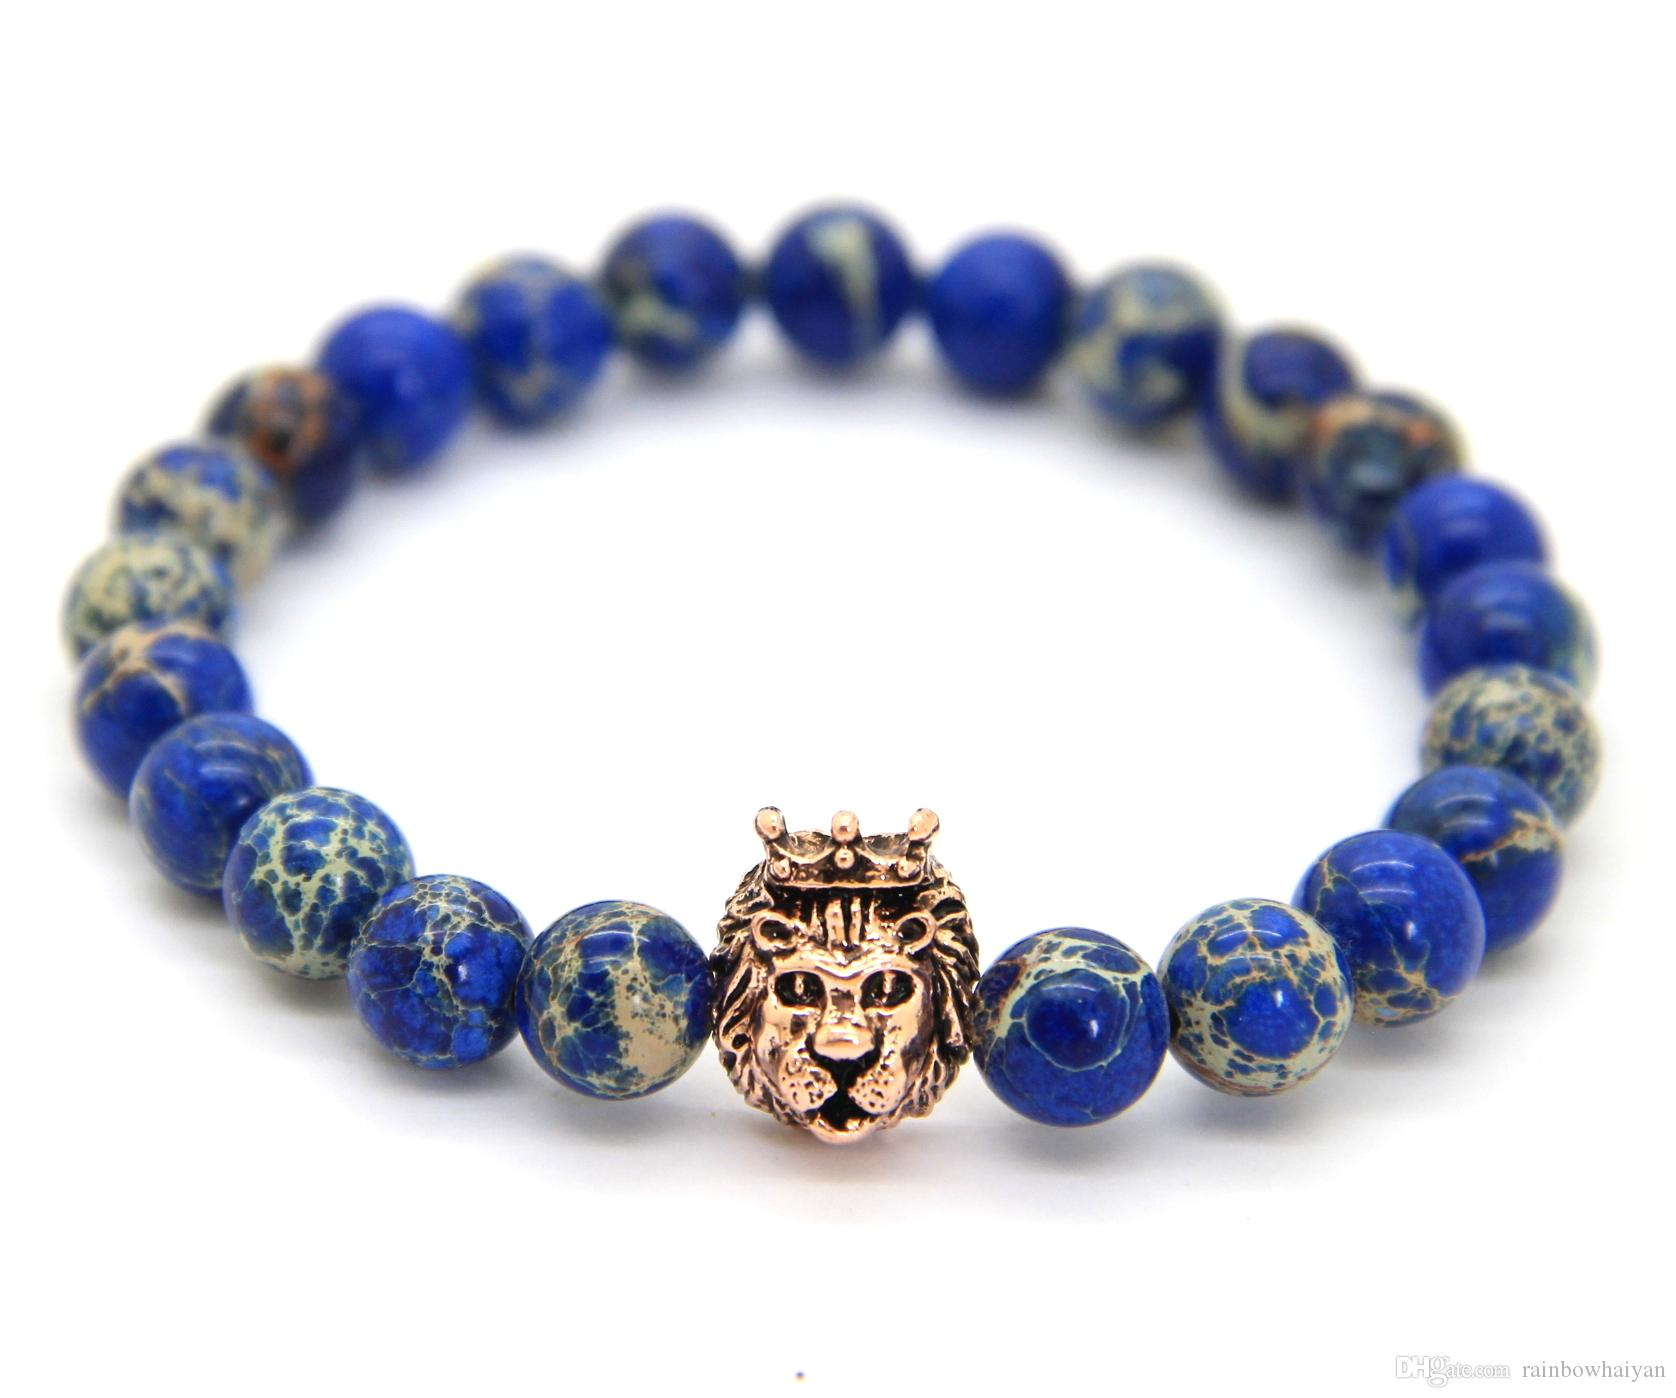 Nueva Venta al por mayor de 8 mm Blue Sea Sediment Stone Beads Mix Color Lion Head Hero pulsera, joyería para hombre